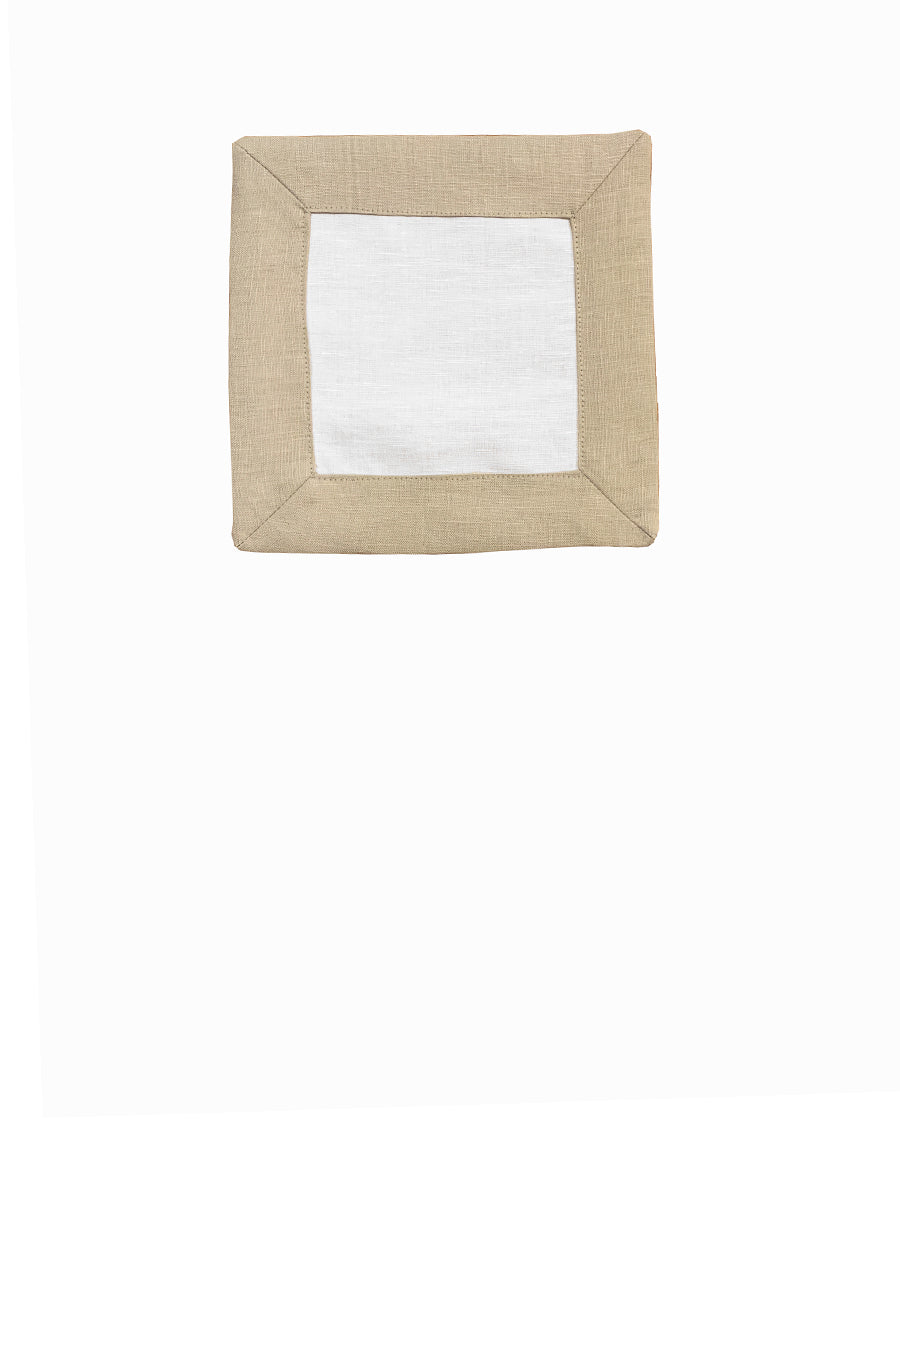 Contrast Border Cocktail Napkin Oatmeal/White